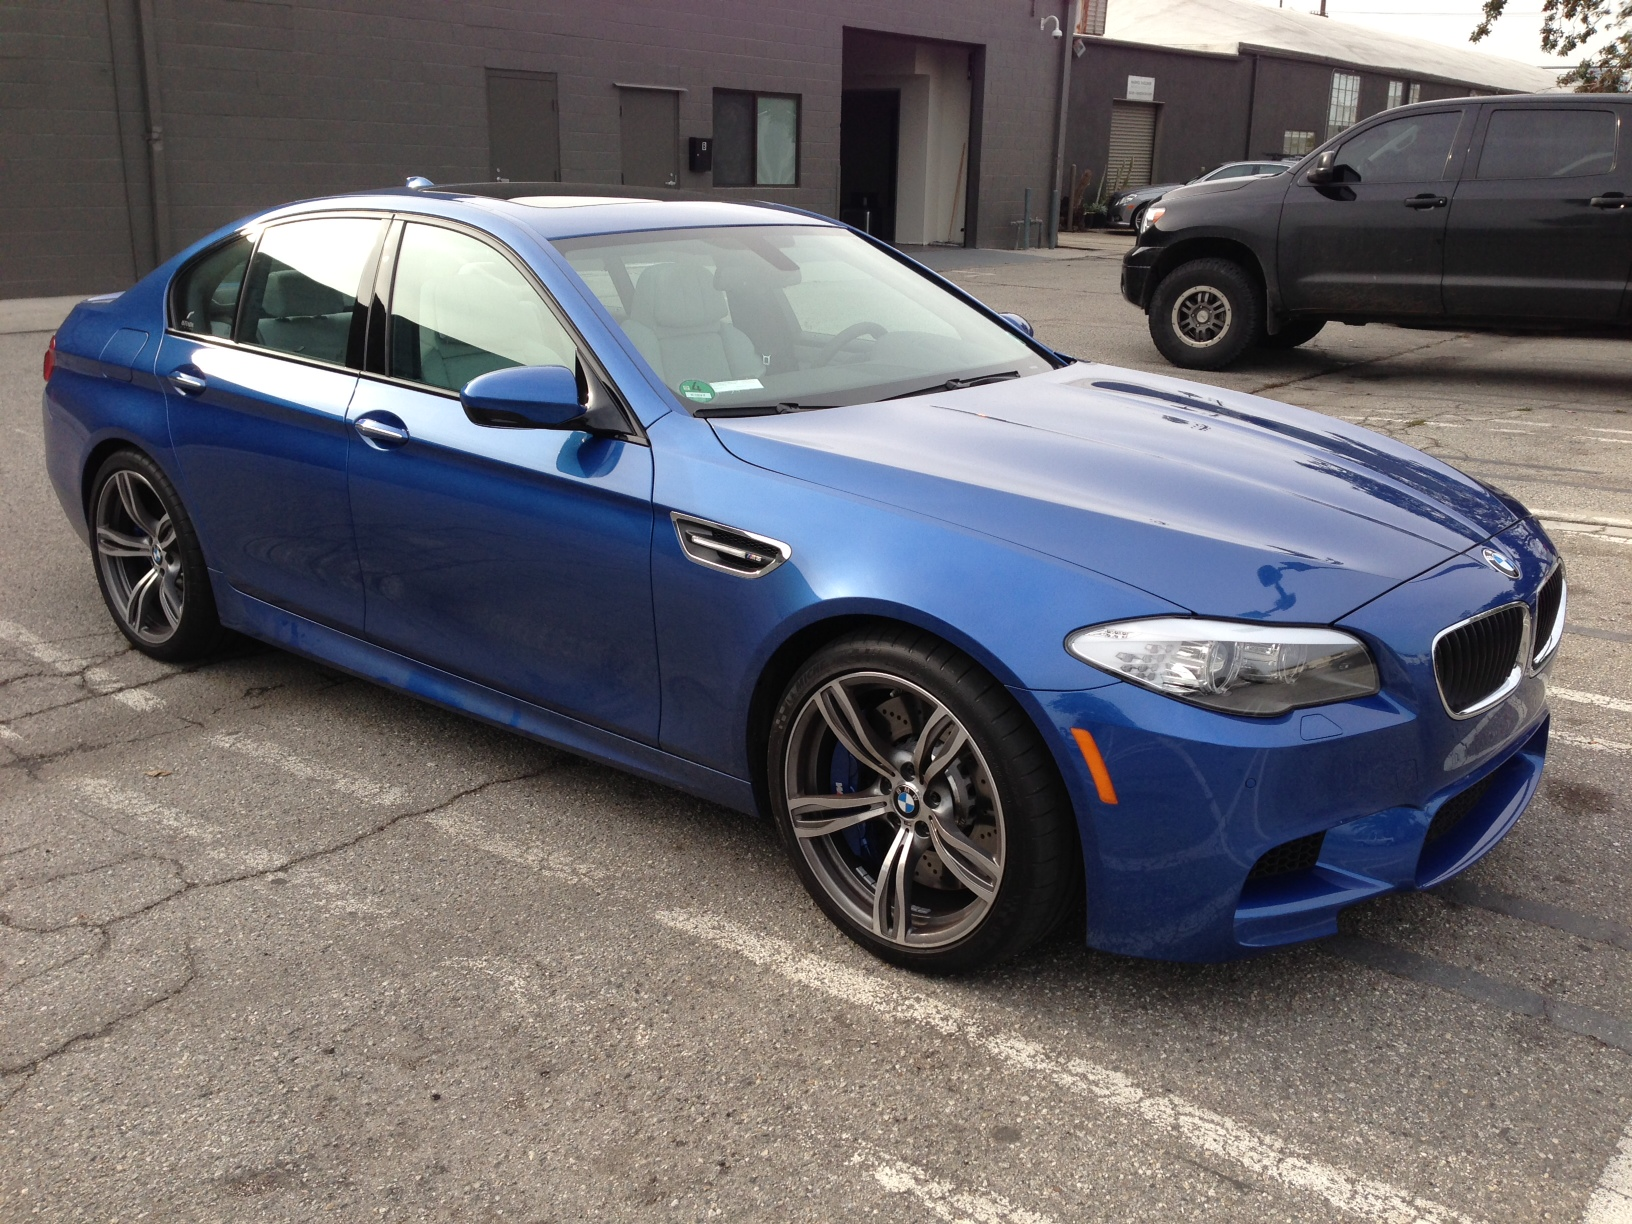 2013 M5 DCT for sale or lease assumption-image.jpeg